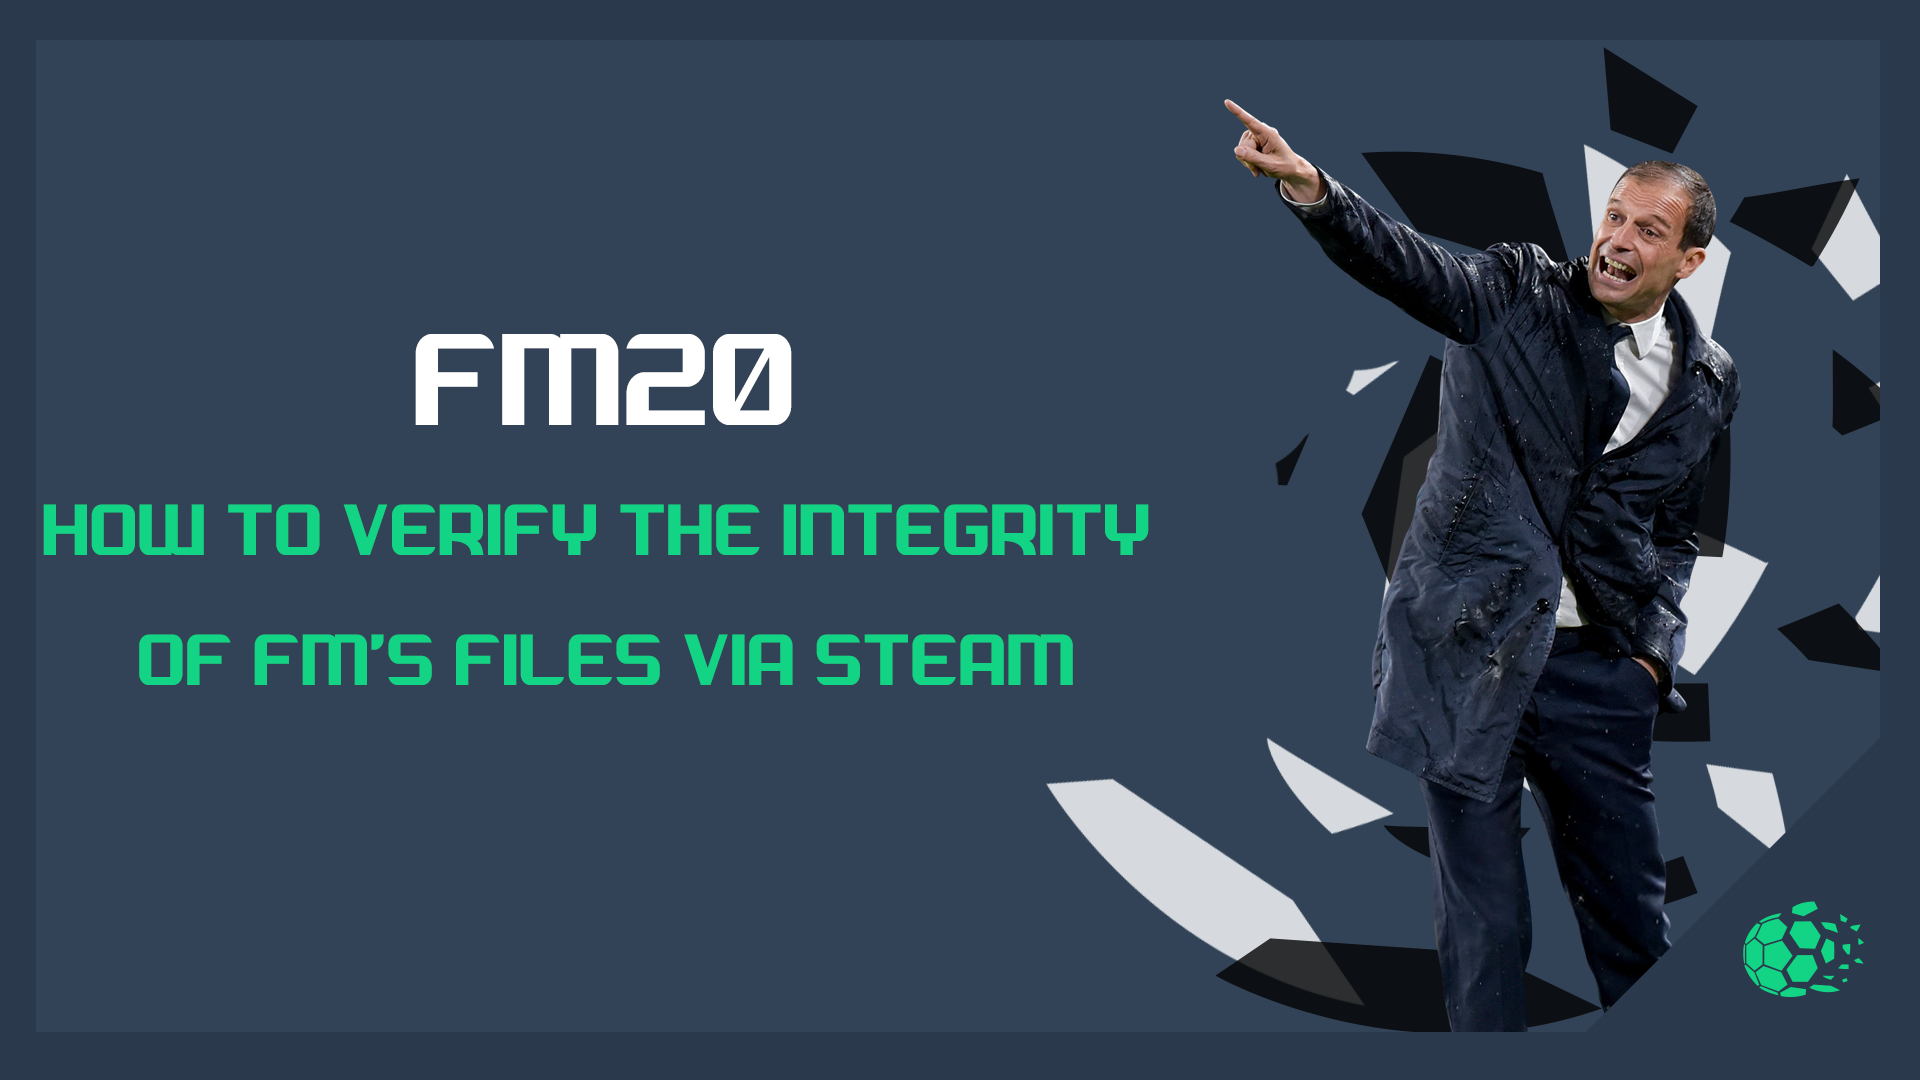 """""""FM20FM20: How to Verify the integrity of FM's files via Steam"""" feature image"""